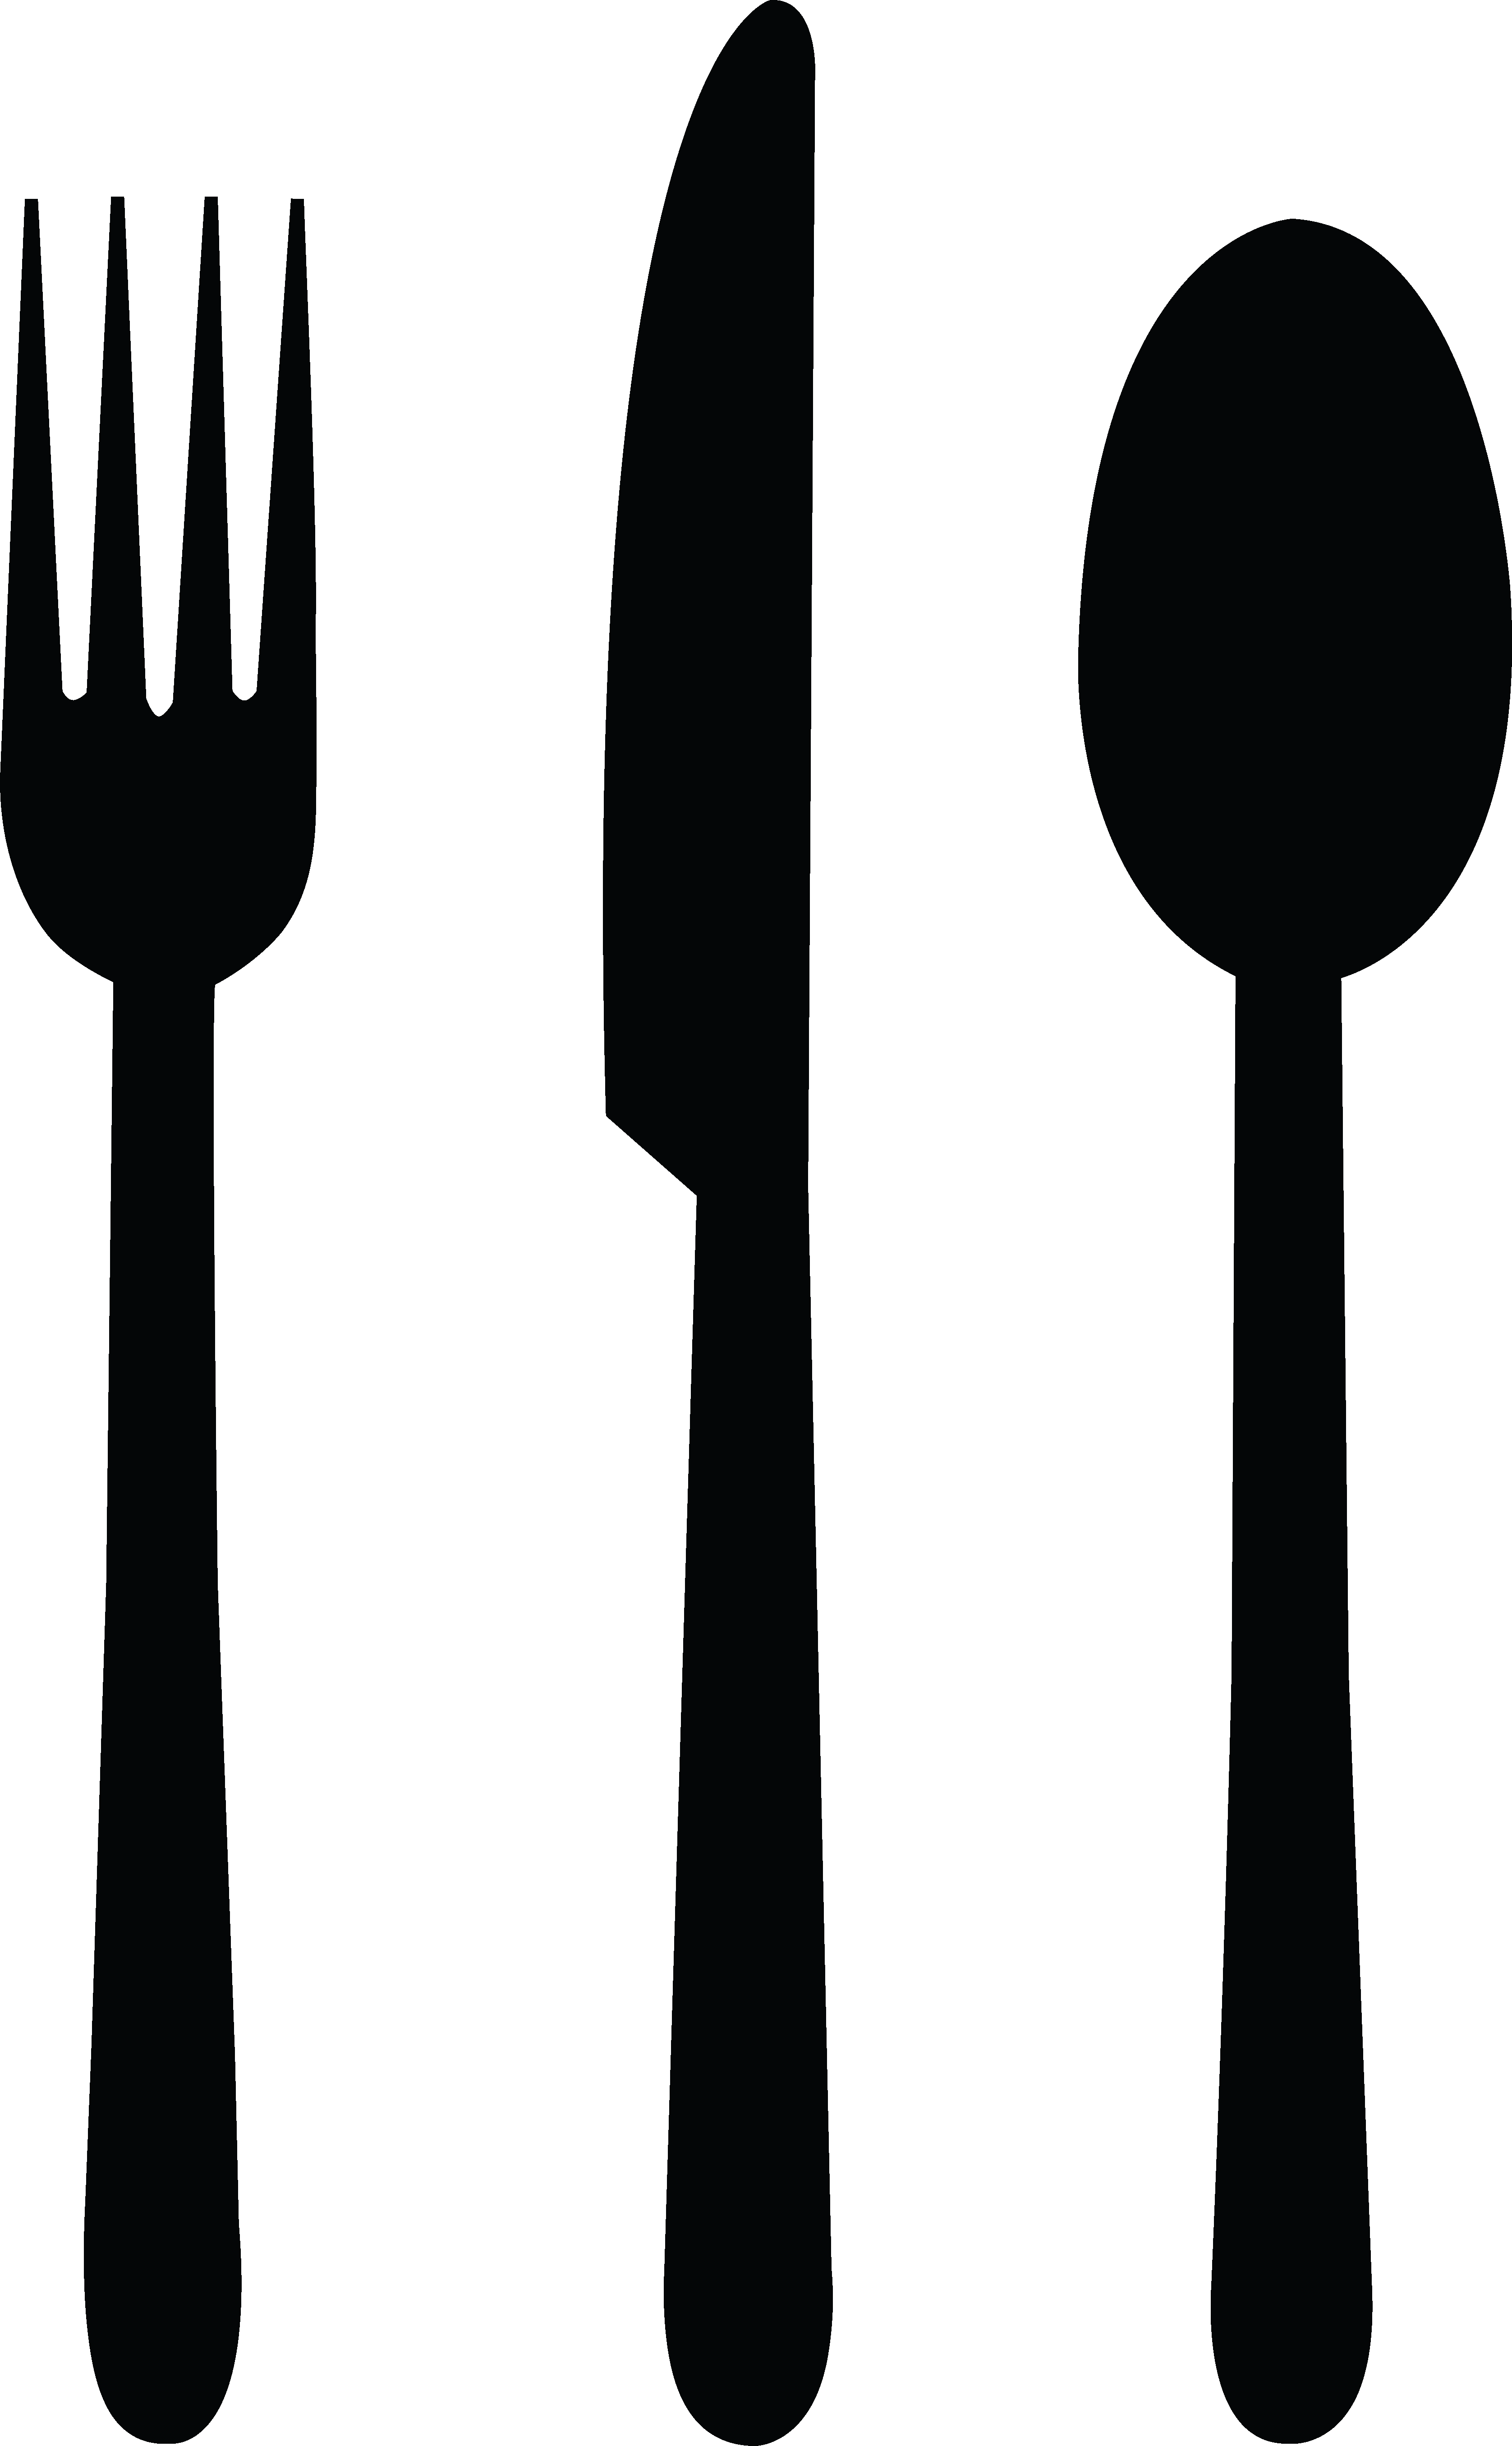 Black fork png. Knife spoon free icons